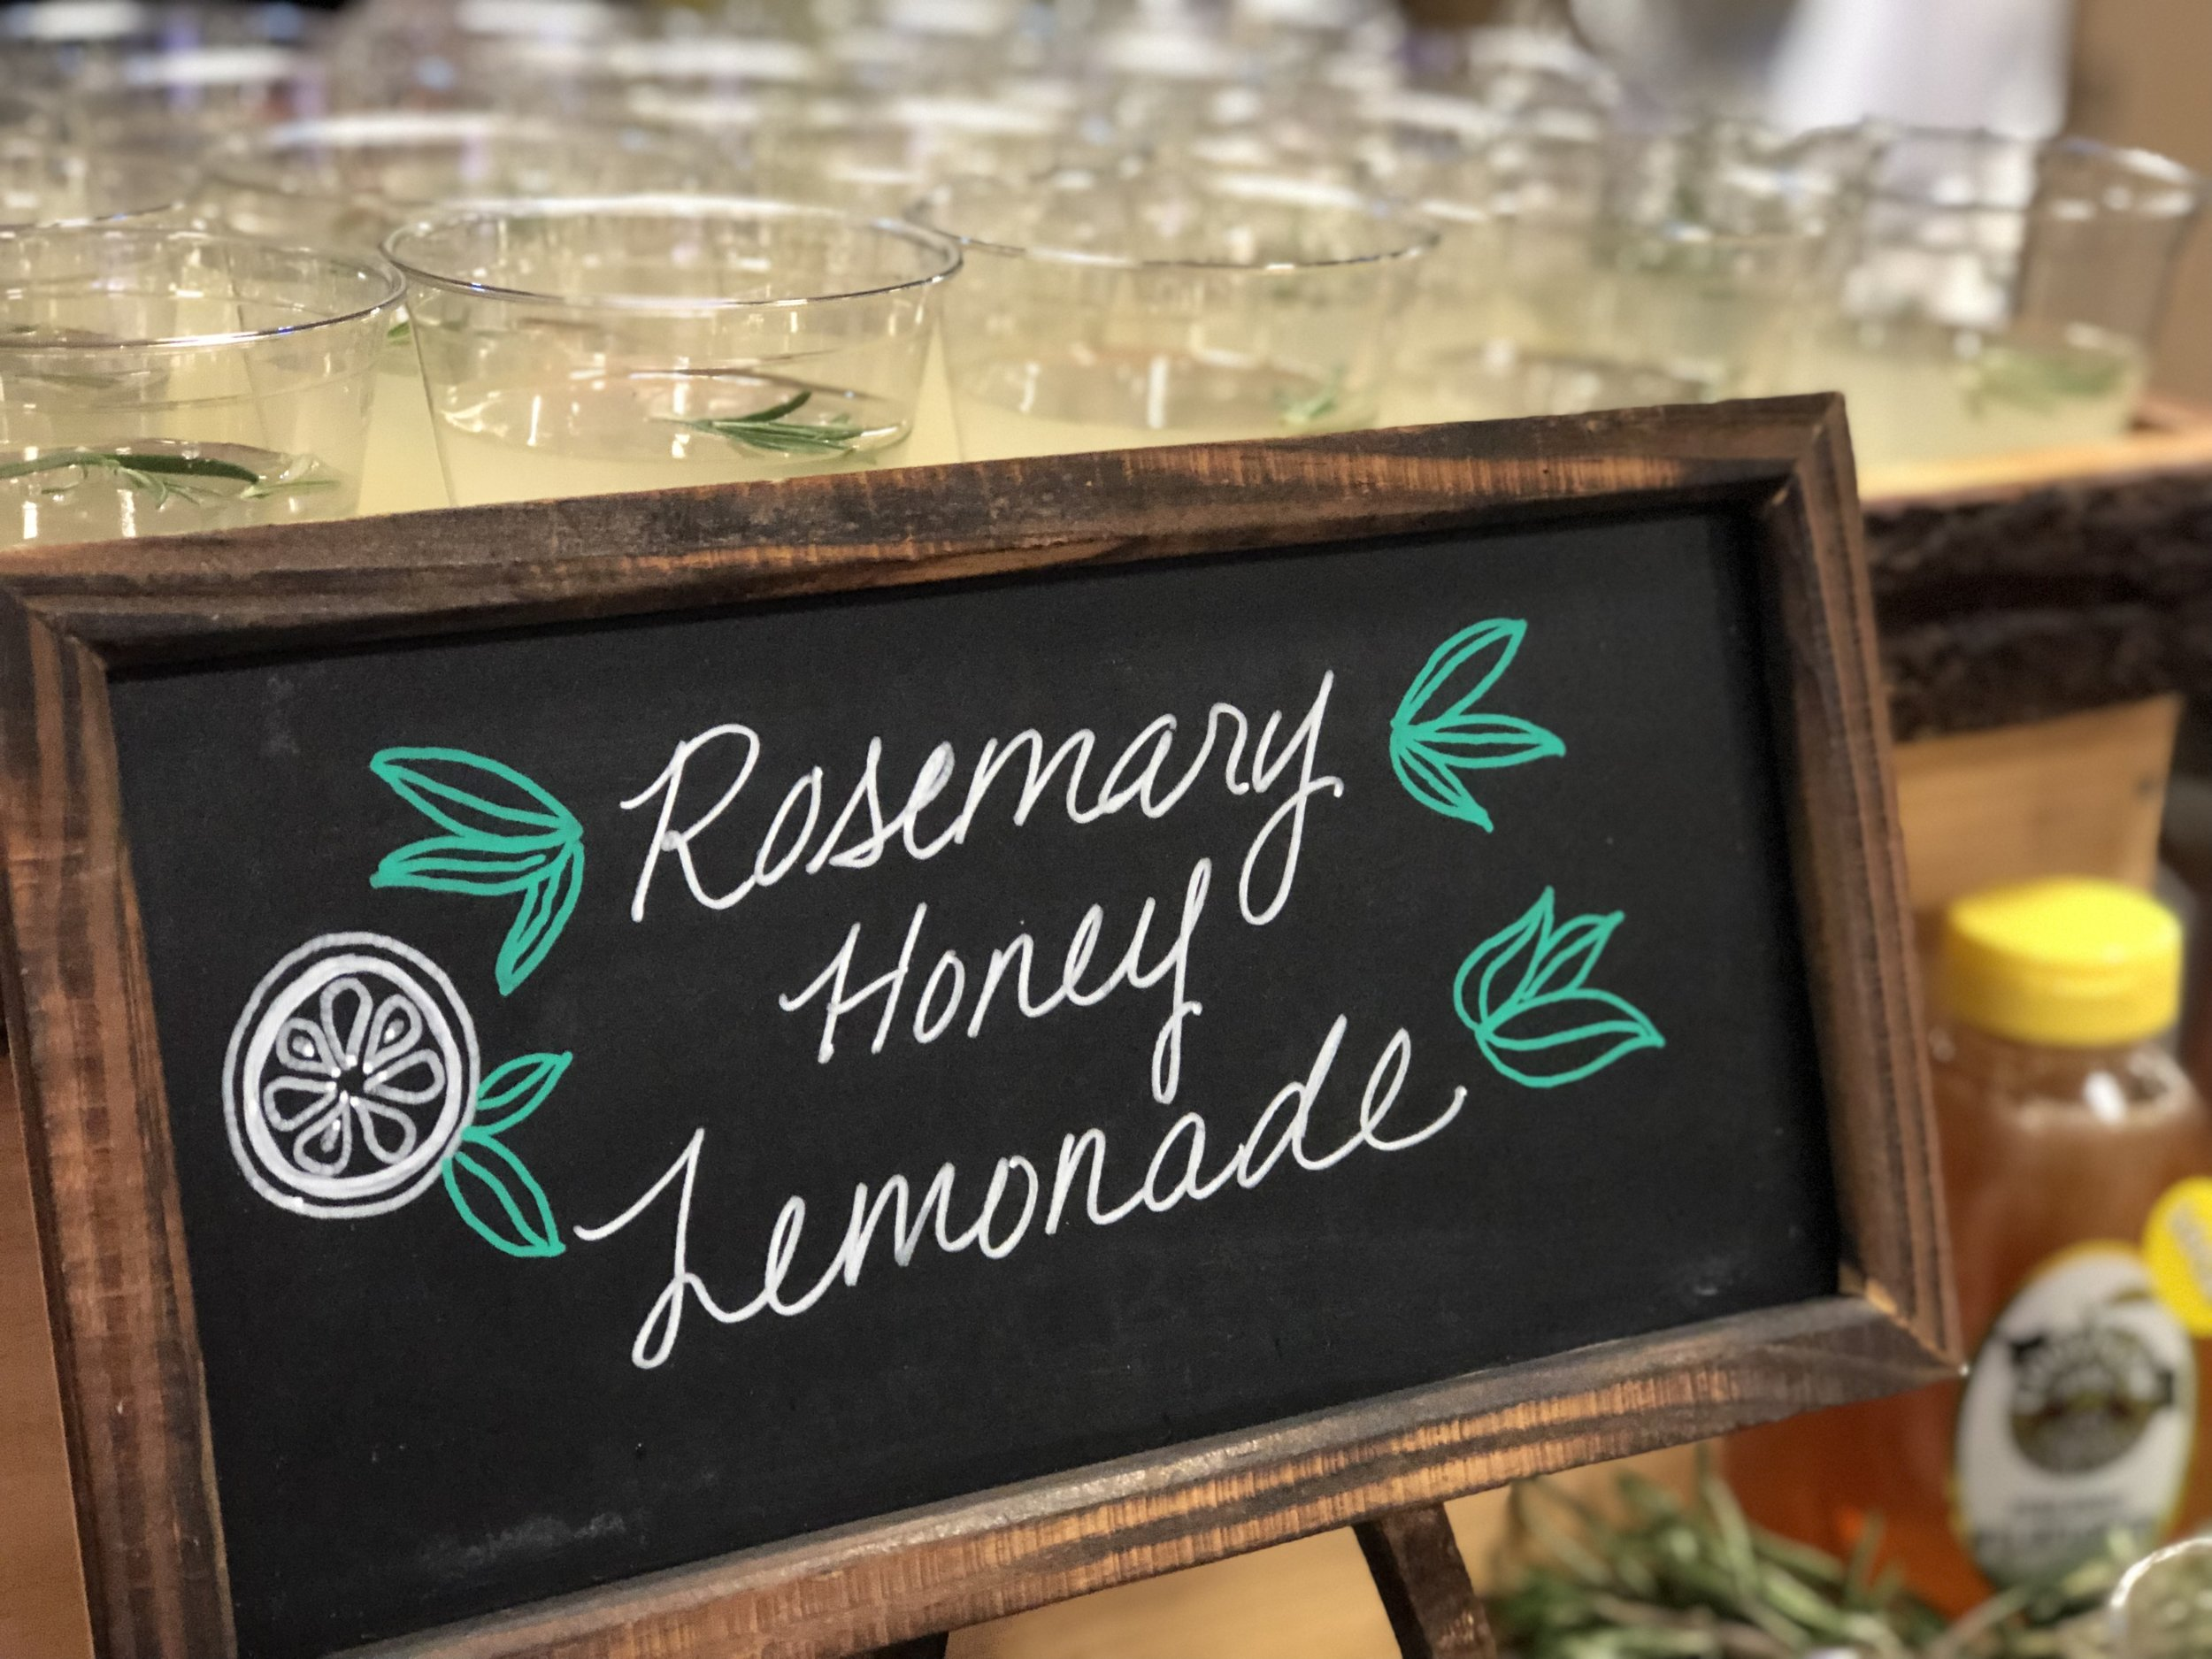 Custom home squeezed lemonade made with fresh rosemary and local honey.